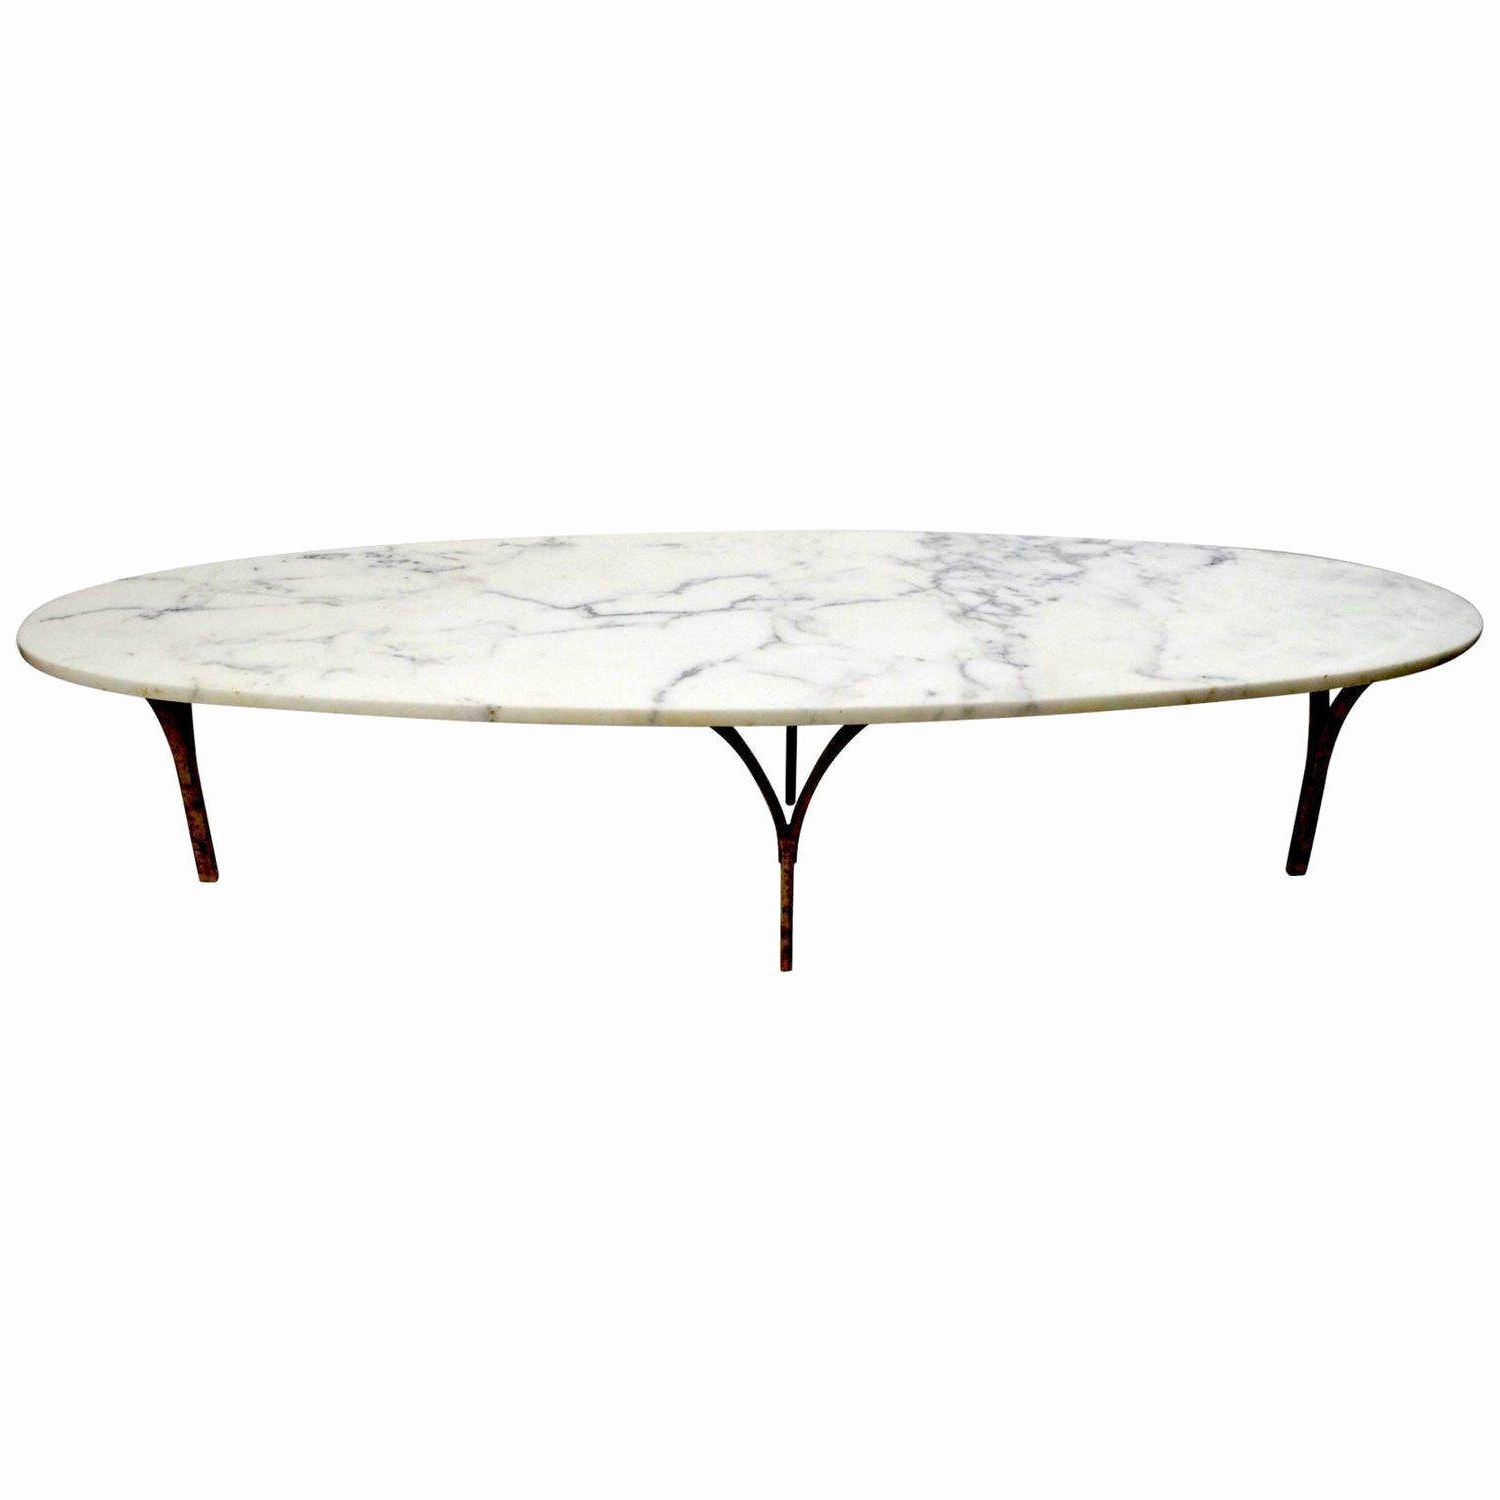 Darbuka Brass Coffee Tables Intended For Newest Tanner Coffee Table Knock Off Lovely Darbuka Coffee Table $700 Cb (View 9 of 20)